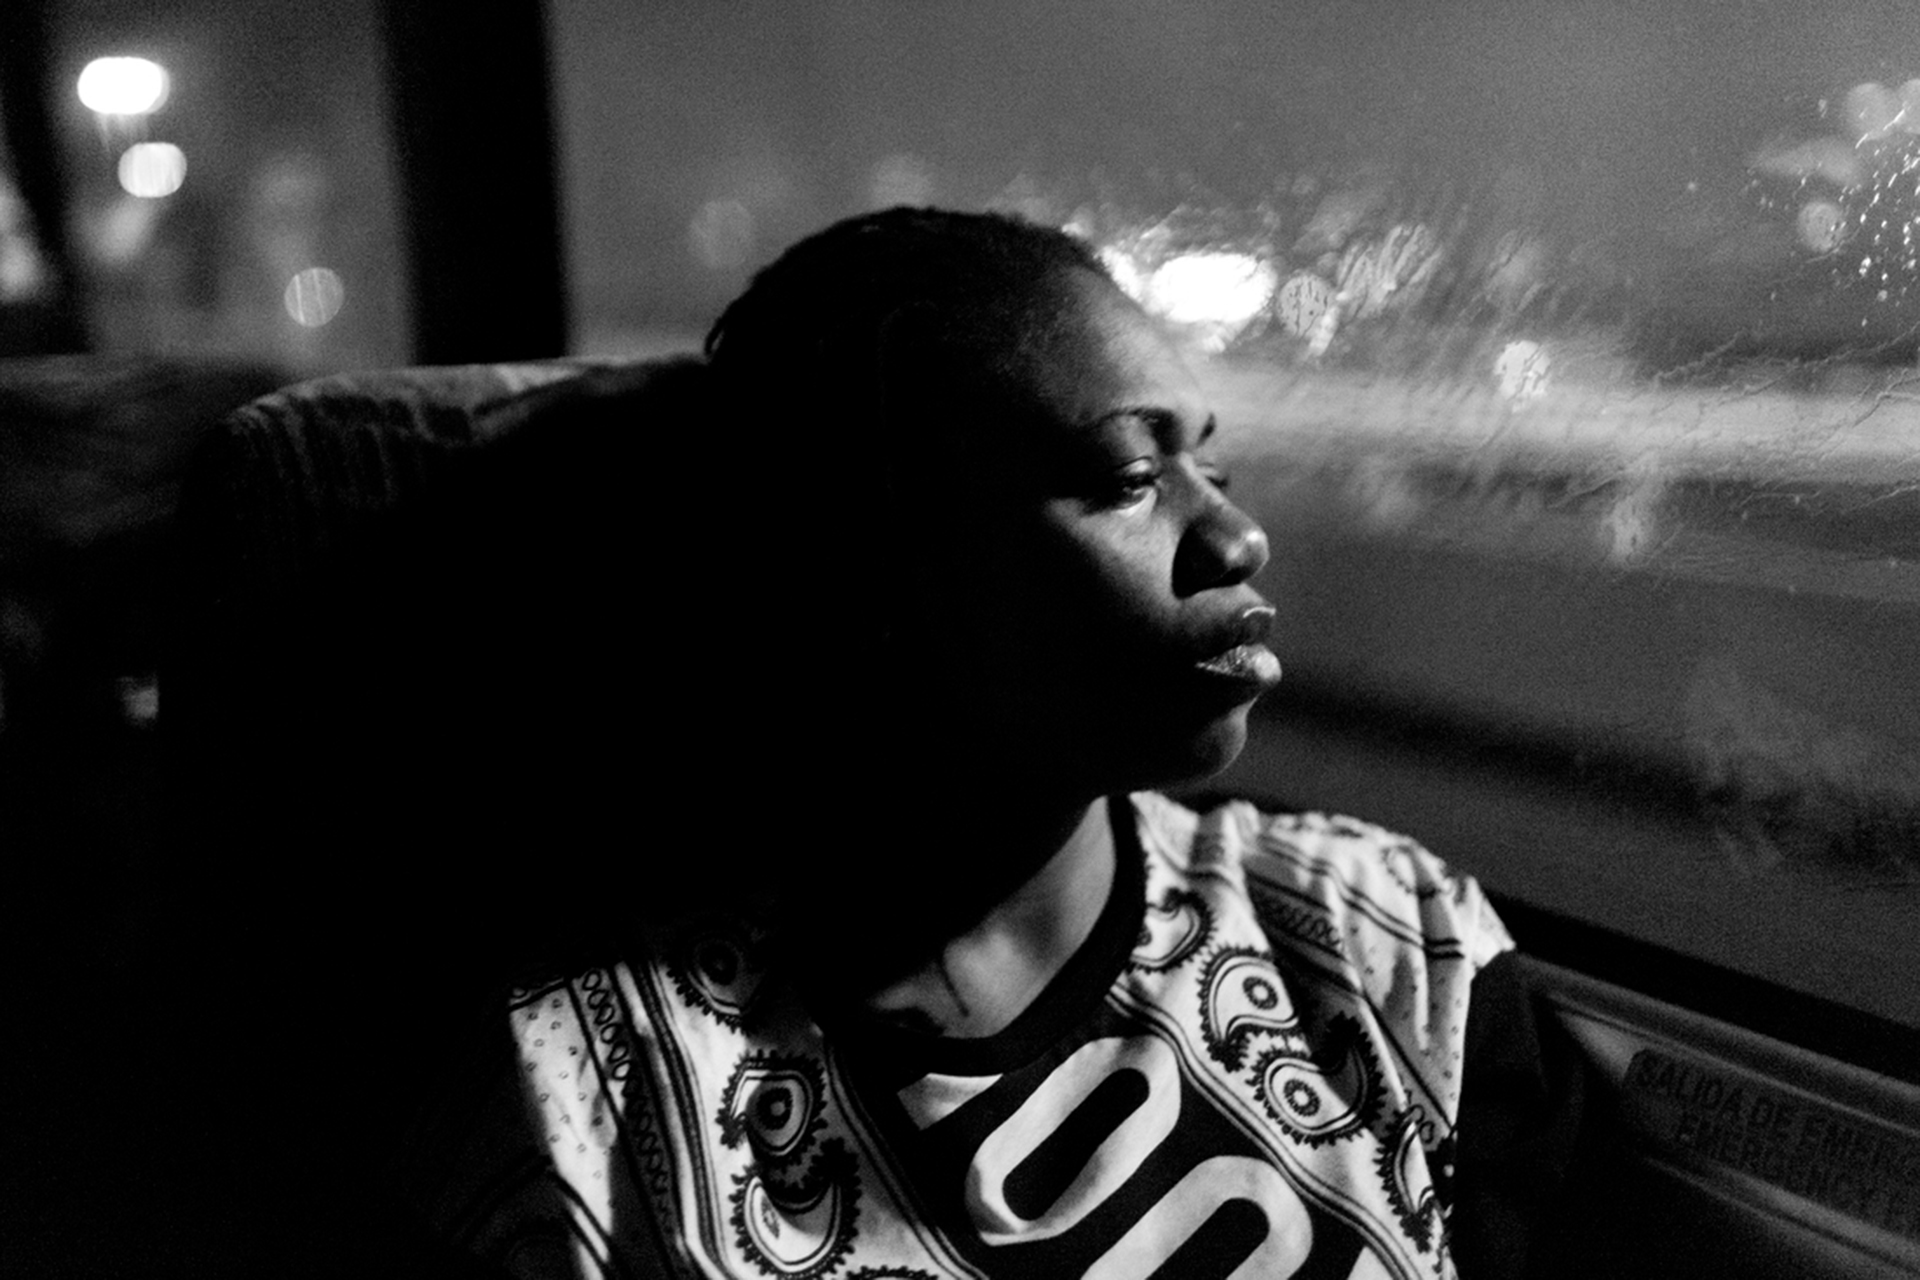 NY Liberty return to New York City after an away game in San Antonio, Texas. (Photo by Annie Flanagan/The Players Tribune)